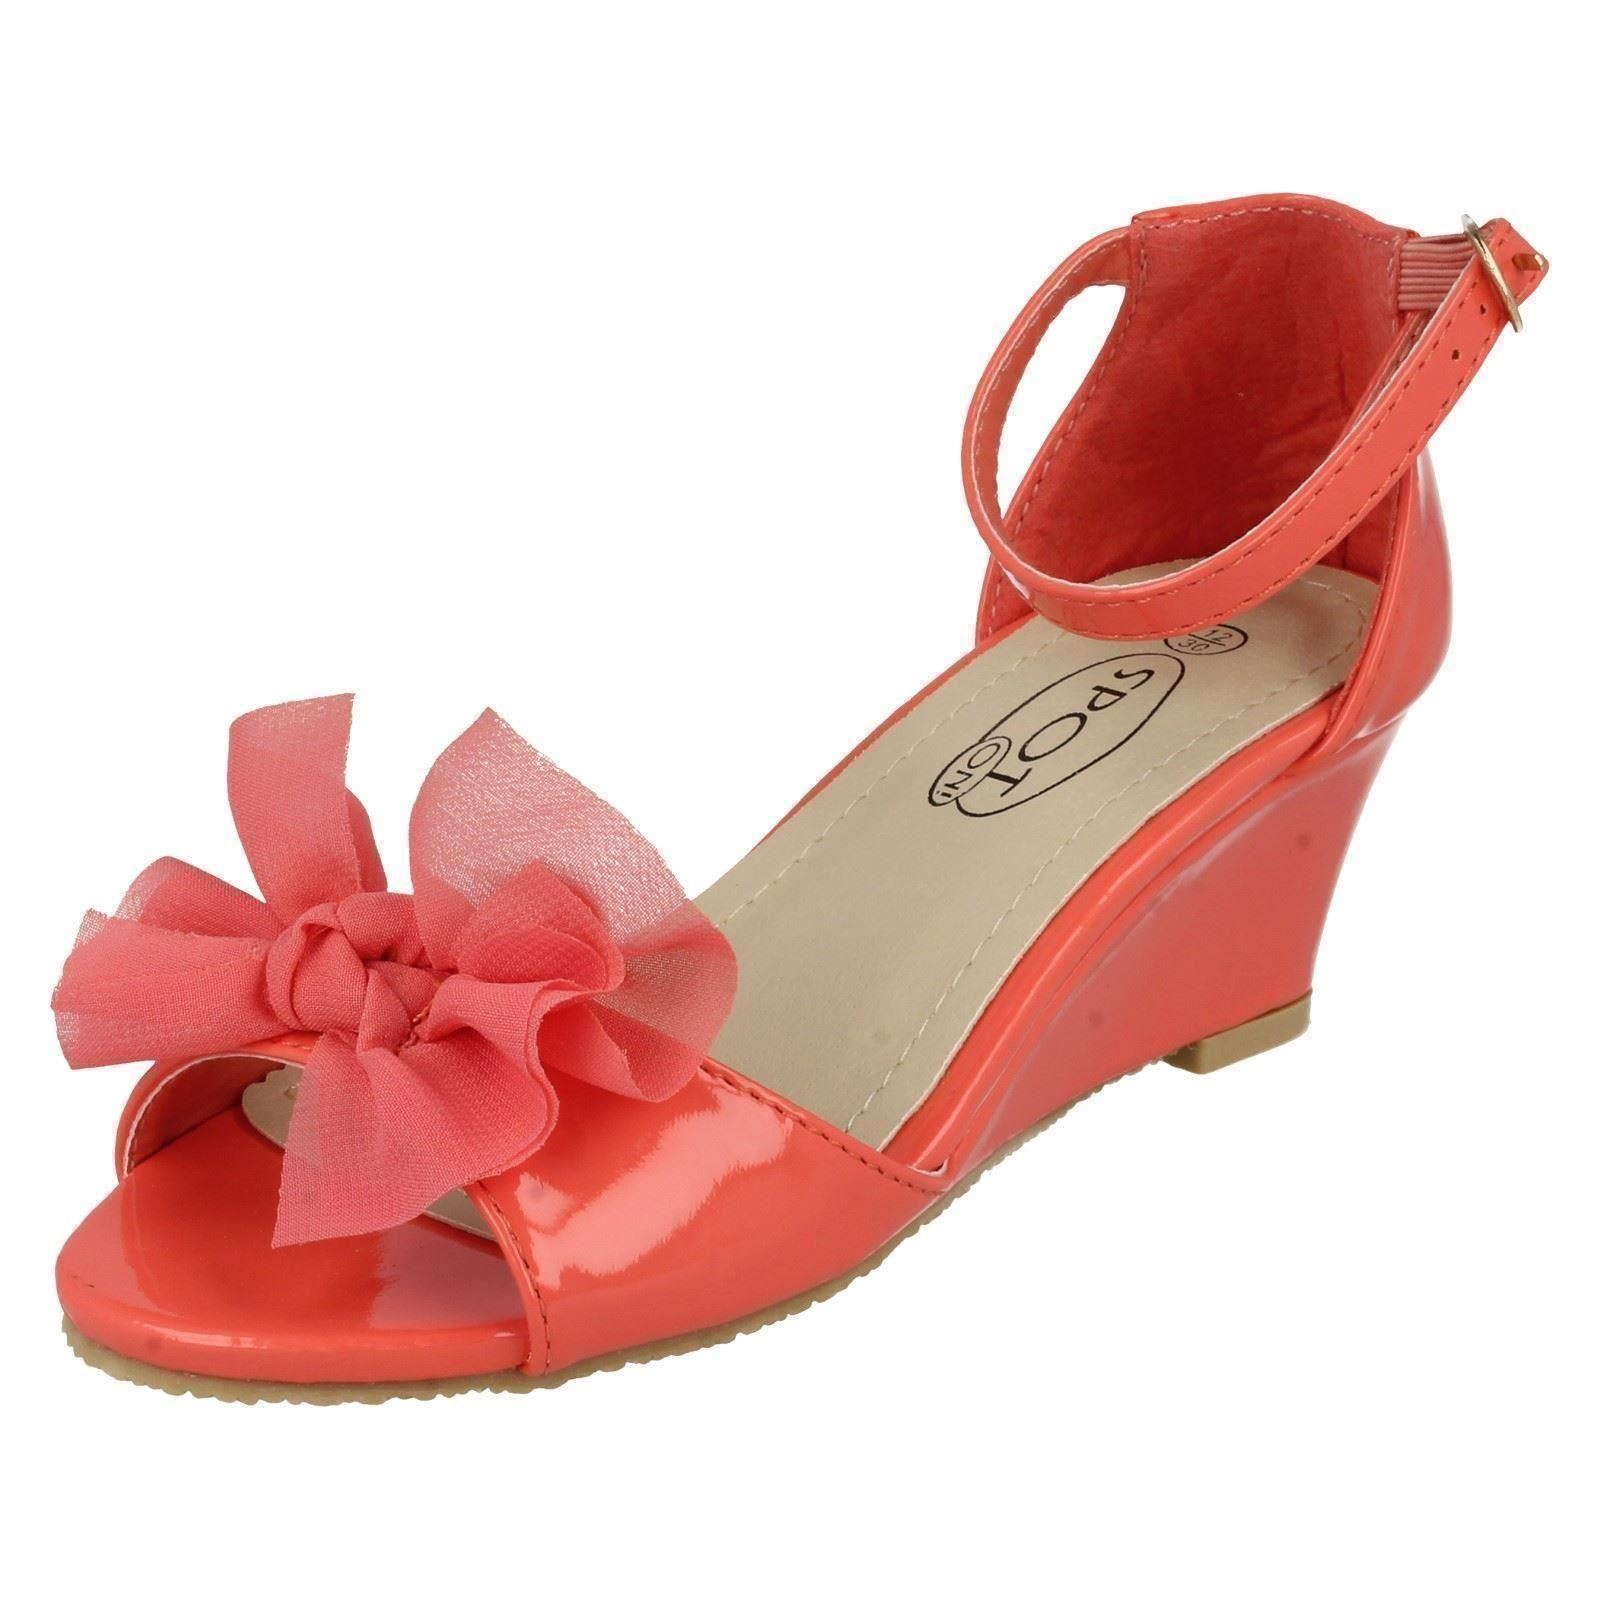 GIRLS CORAL LOW HEEL WEDGES PRETTY SLIP-ON PATENT SHOES CHILDRENS SIZES 10-2